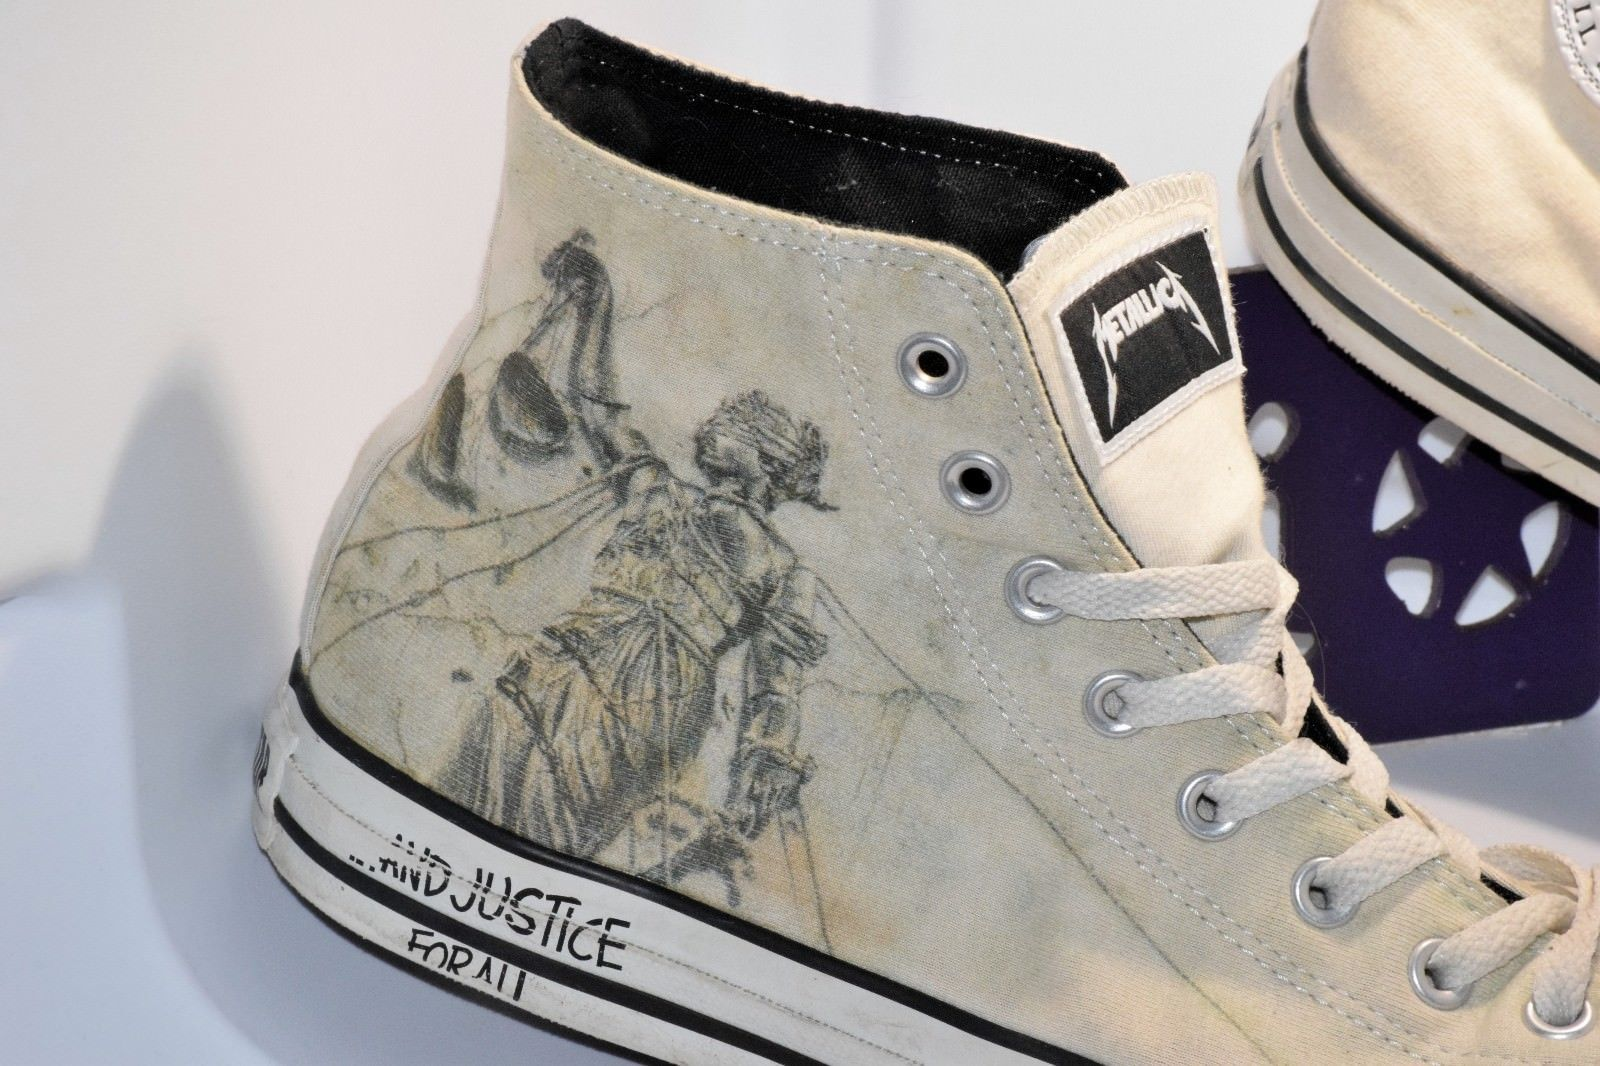 ad02eacf66f9 Converse Metallica 11 Men s 13 Women s and justice for all Frantic 2008  artwork